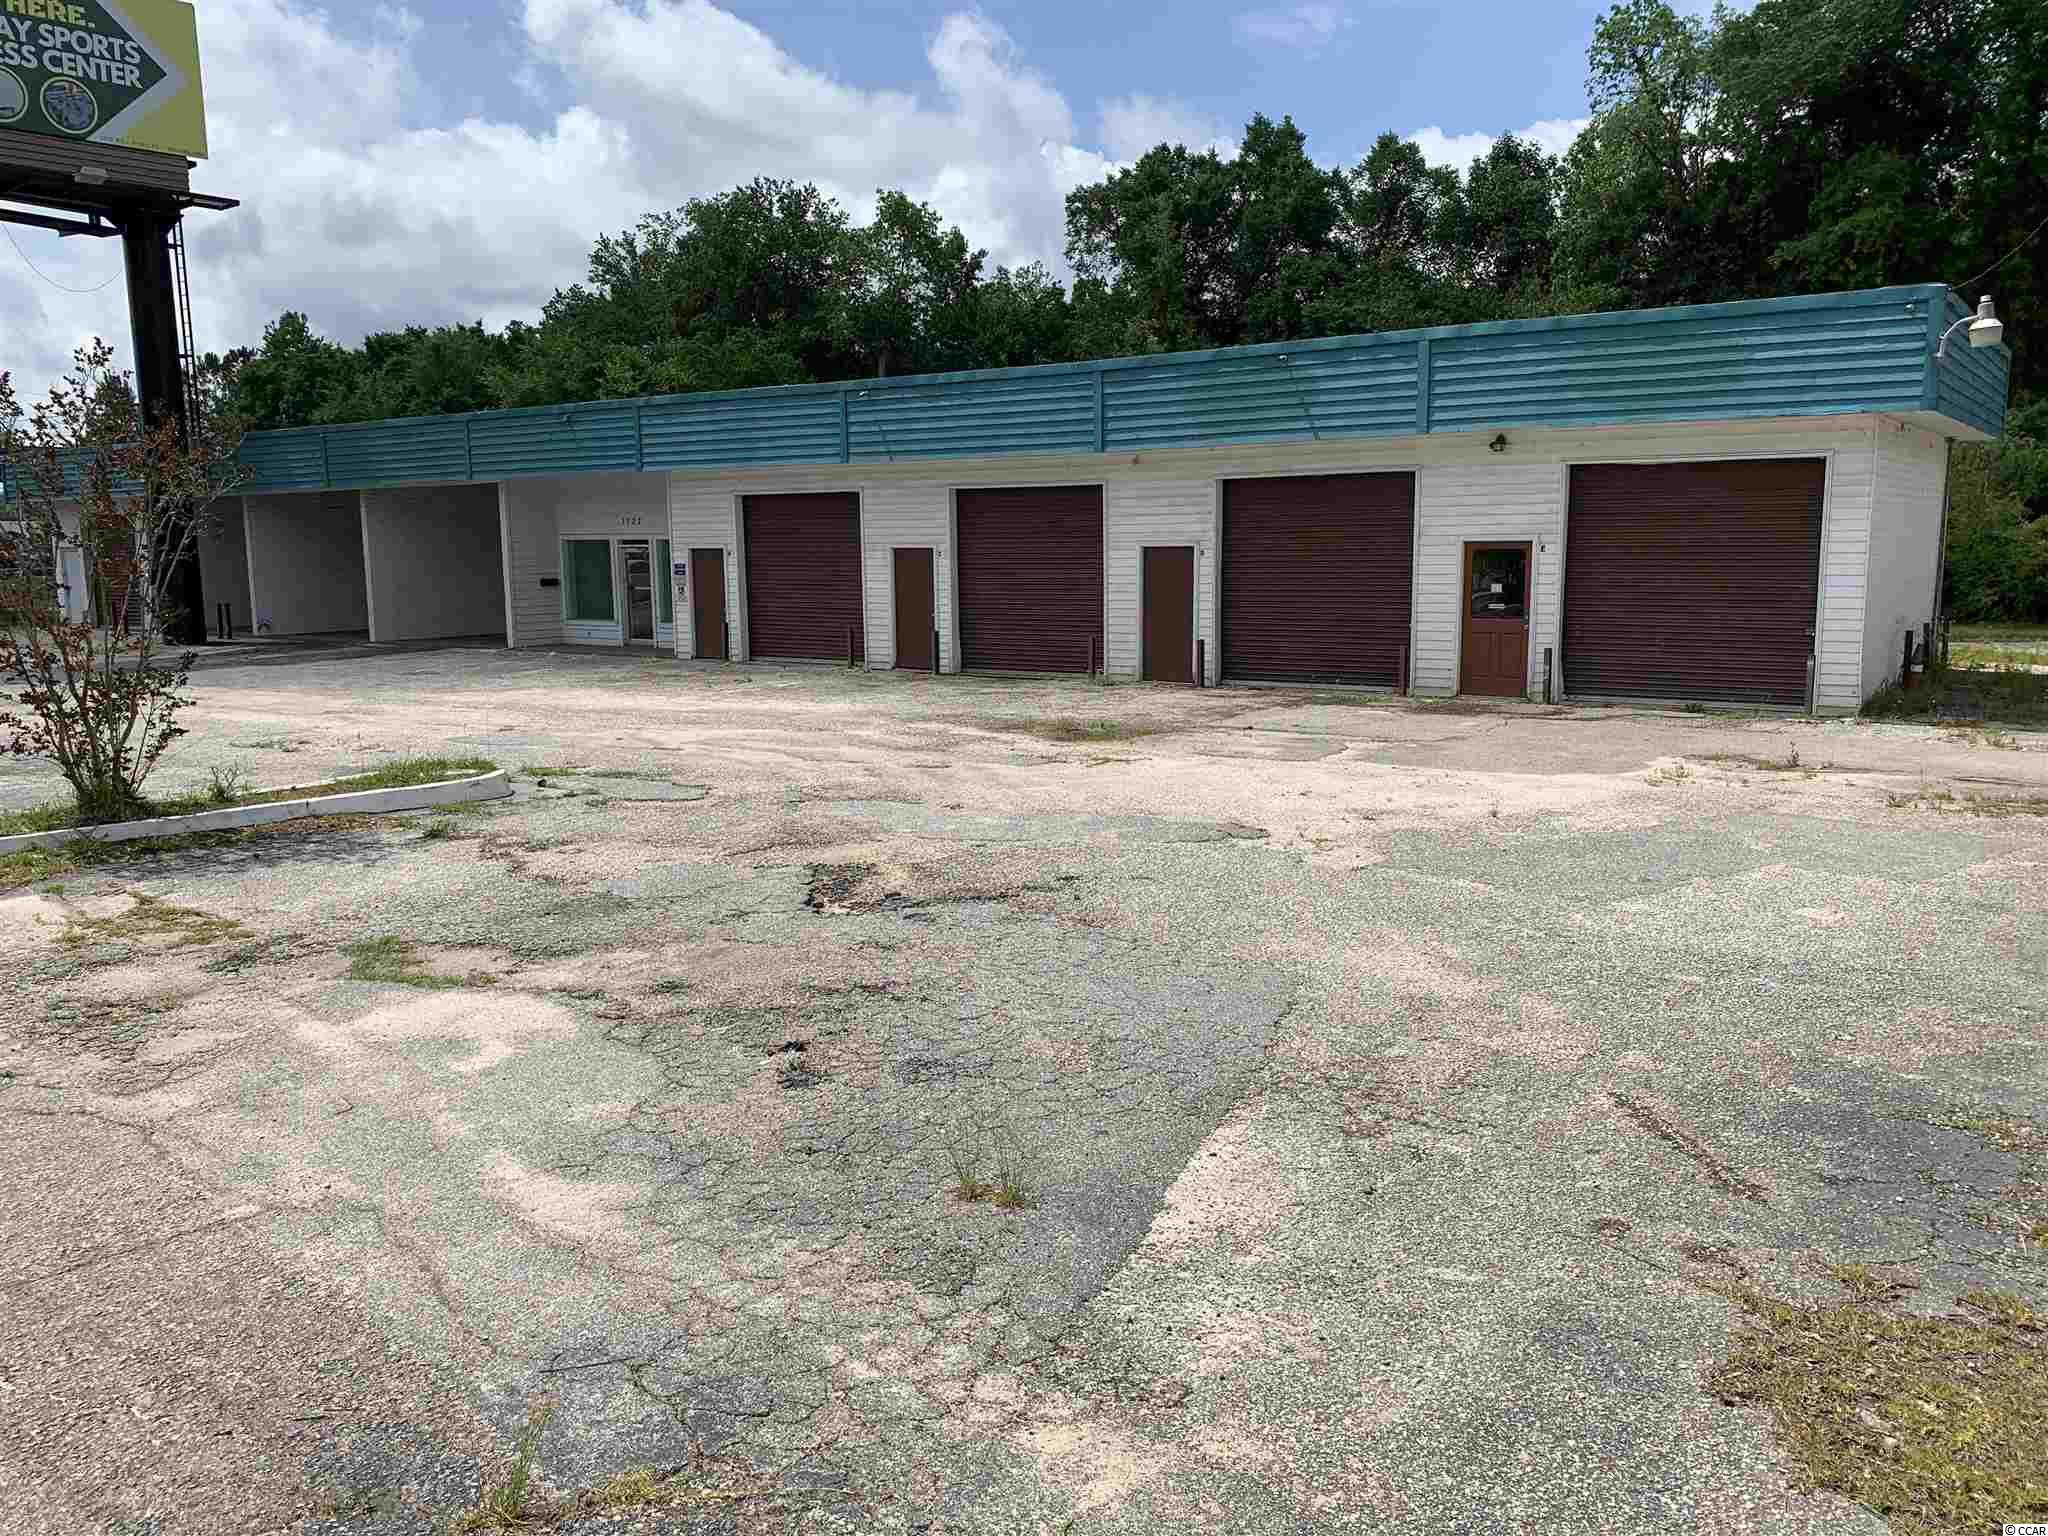 Carwash and Storage units located on Highway 501.  Property has 3 open bays and 5 bays with sliding doors on both sides for easy access.  Bays are 24' deep x 15.5' wide x 15' high.  Property has 107' of frontage along highway 501.  Large amount of parking space in rear of the building along with 10 car parking in the front.  All measurements are approximate and not guaranteed, buyer is responsible for verification.